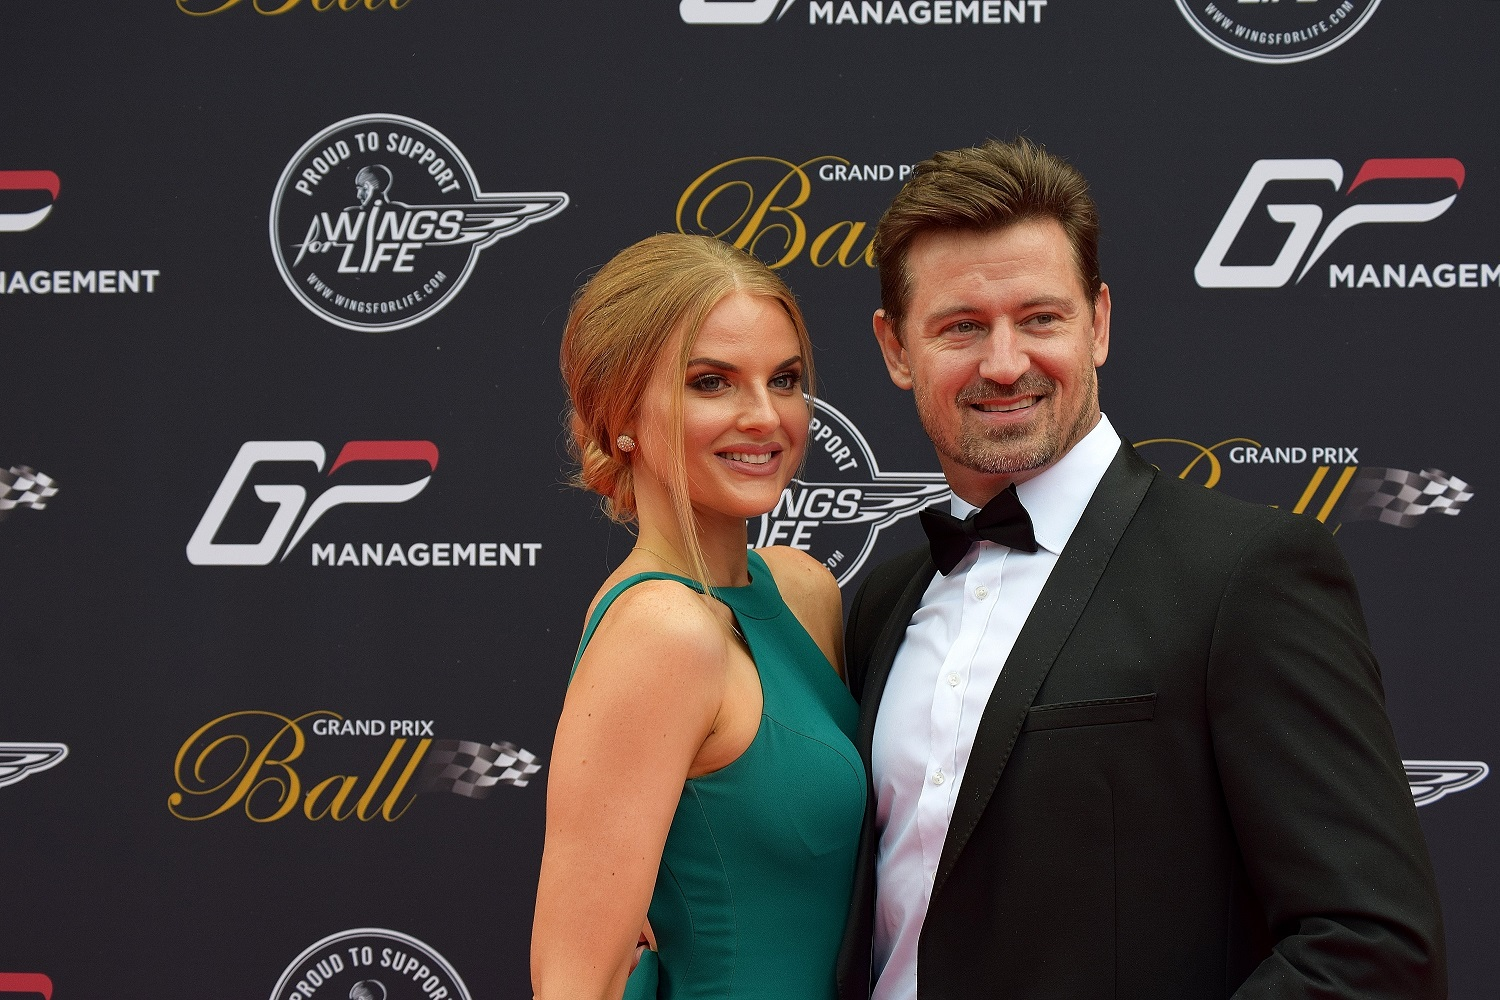 Grand Prix Ball 2018 Guests